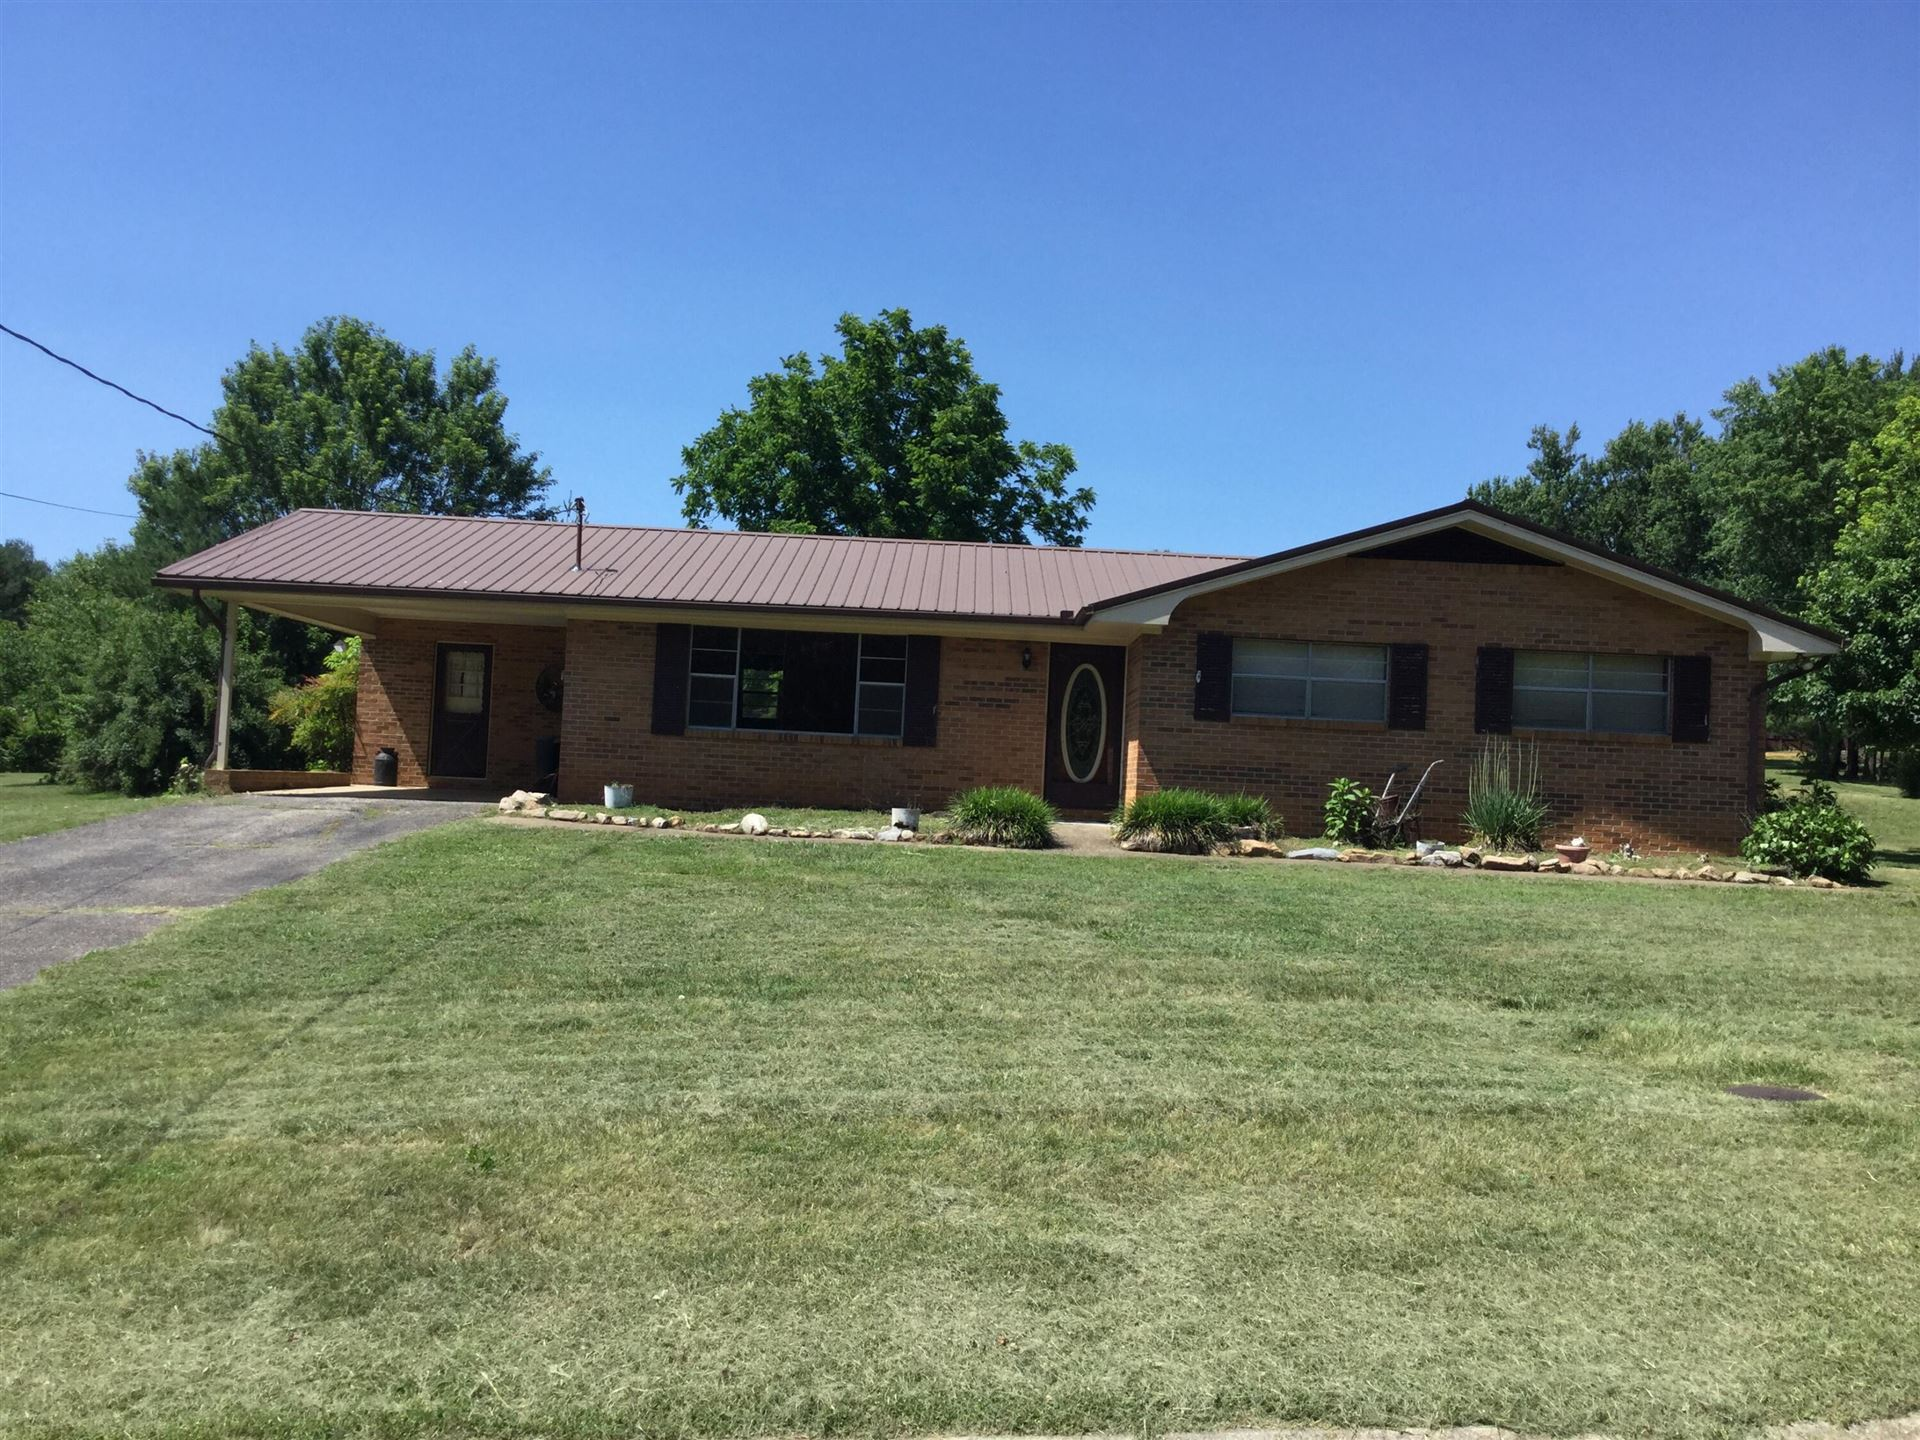 Photo of 150 Sioux Trail, Greeneville, TN 37743 (MLS # 9924242)